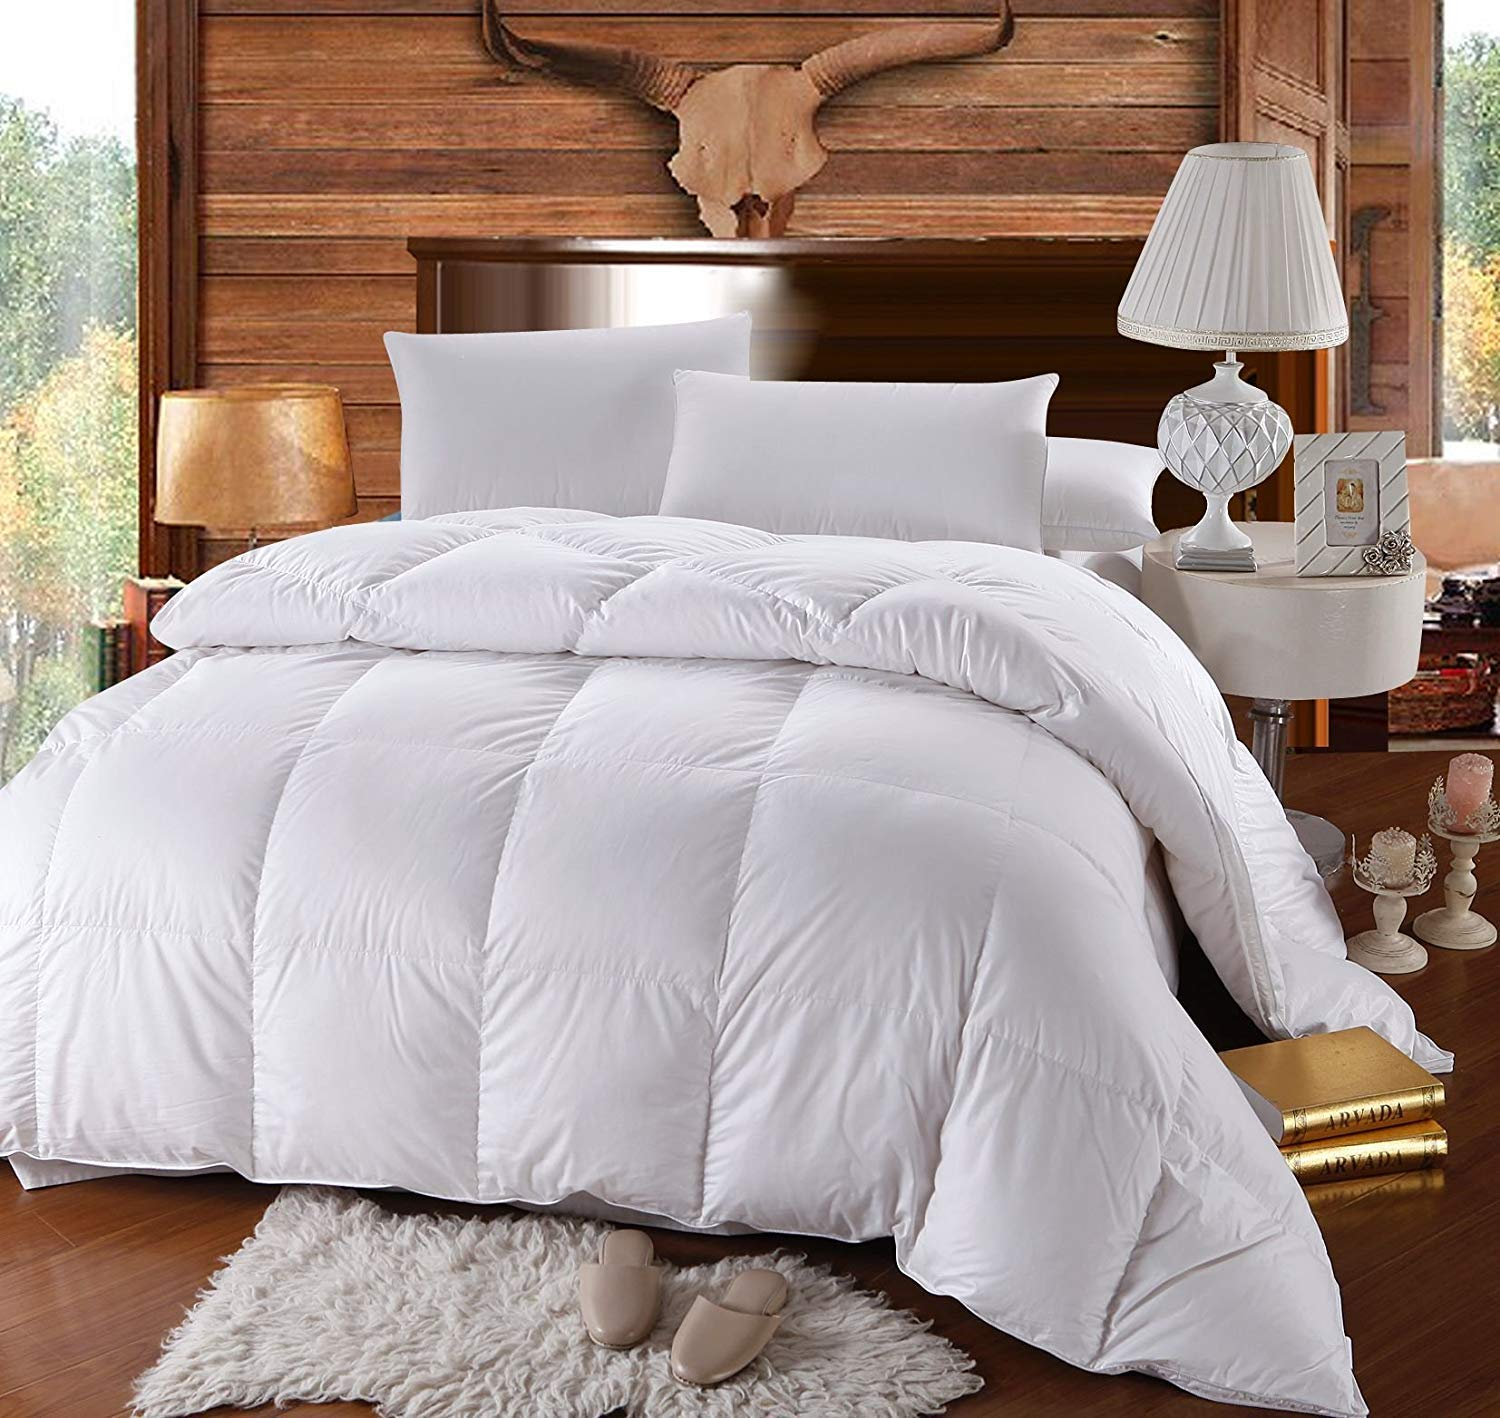 Amazon com royal hotel queen size down comforter 500 thread count down comforter 100 percent cotton 500 tc 750fp 50oz solid white home kitchen